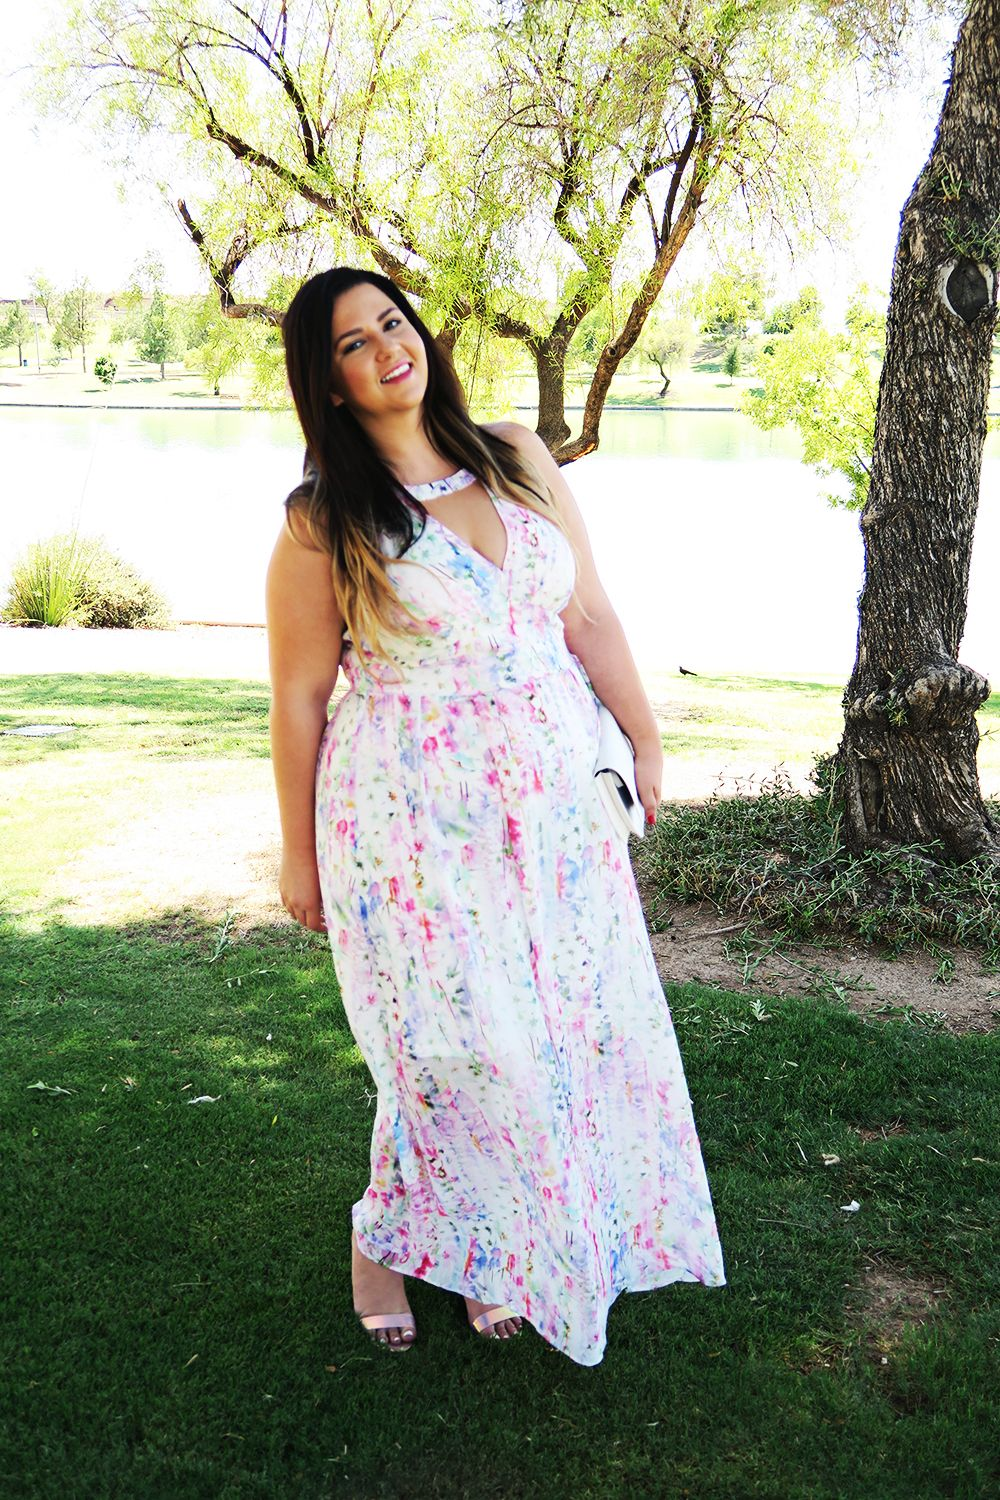 Plus size wedding guest formal gown dress event maxi dress for Plus size maxi dresses for summer wedding